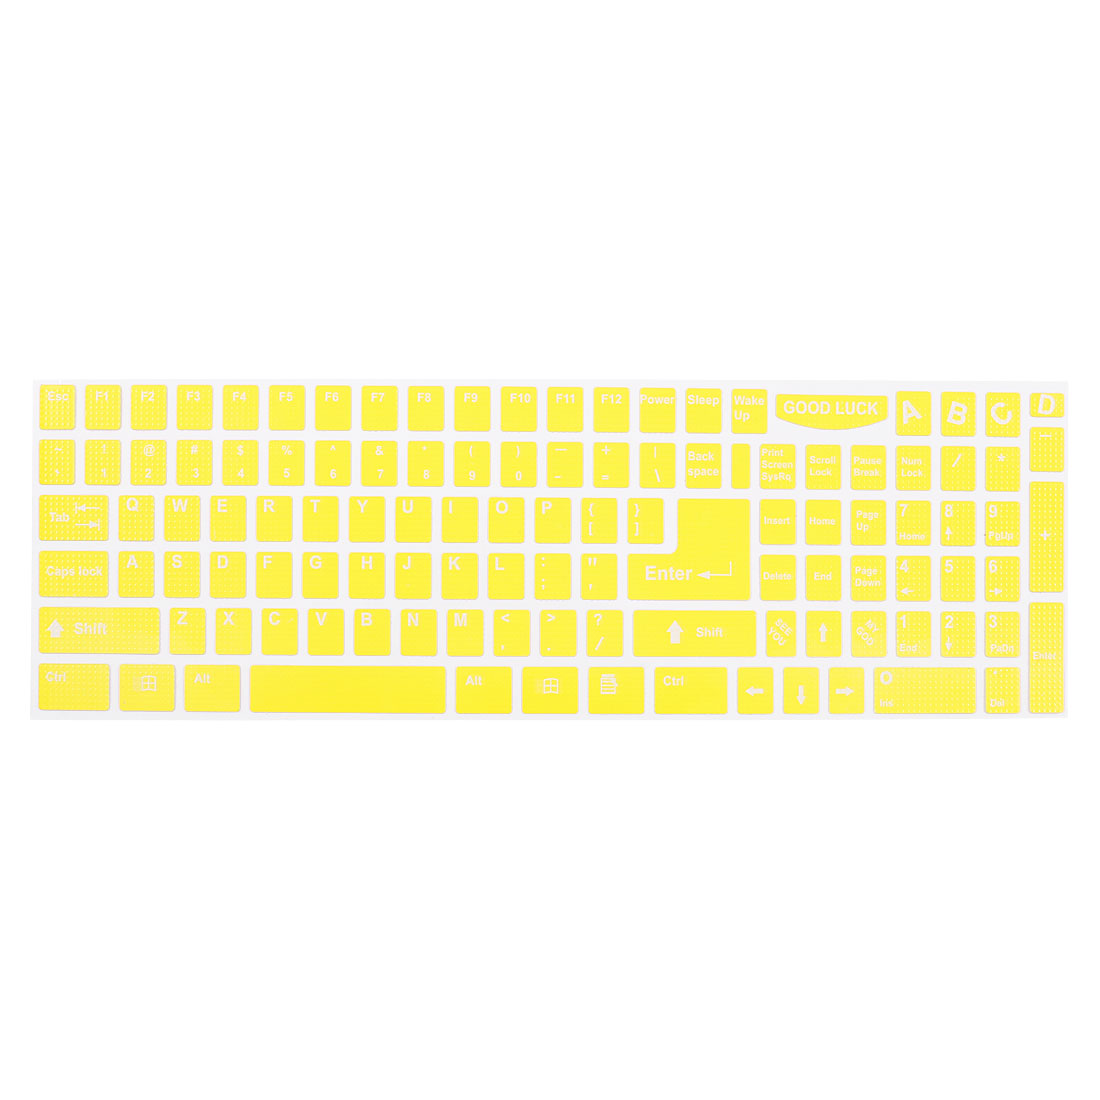 White English Letters Arabic Keyboard Sticker Decal Yellow for Laptop PC